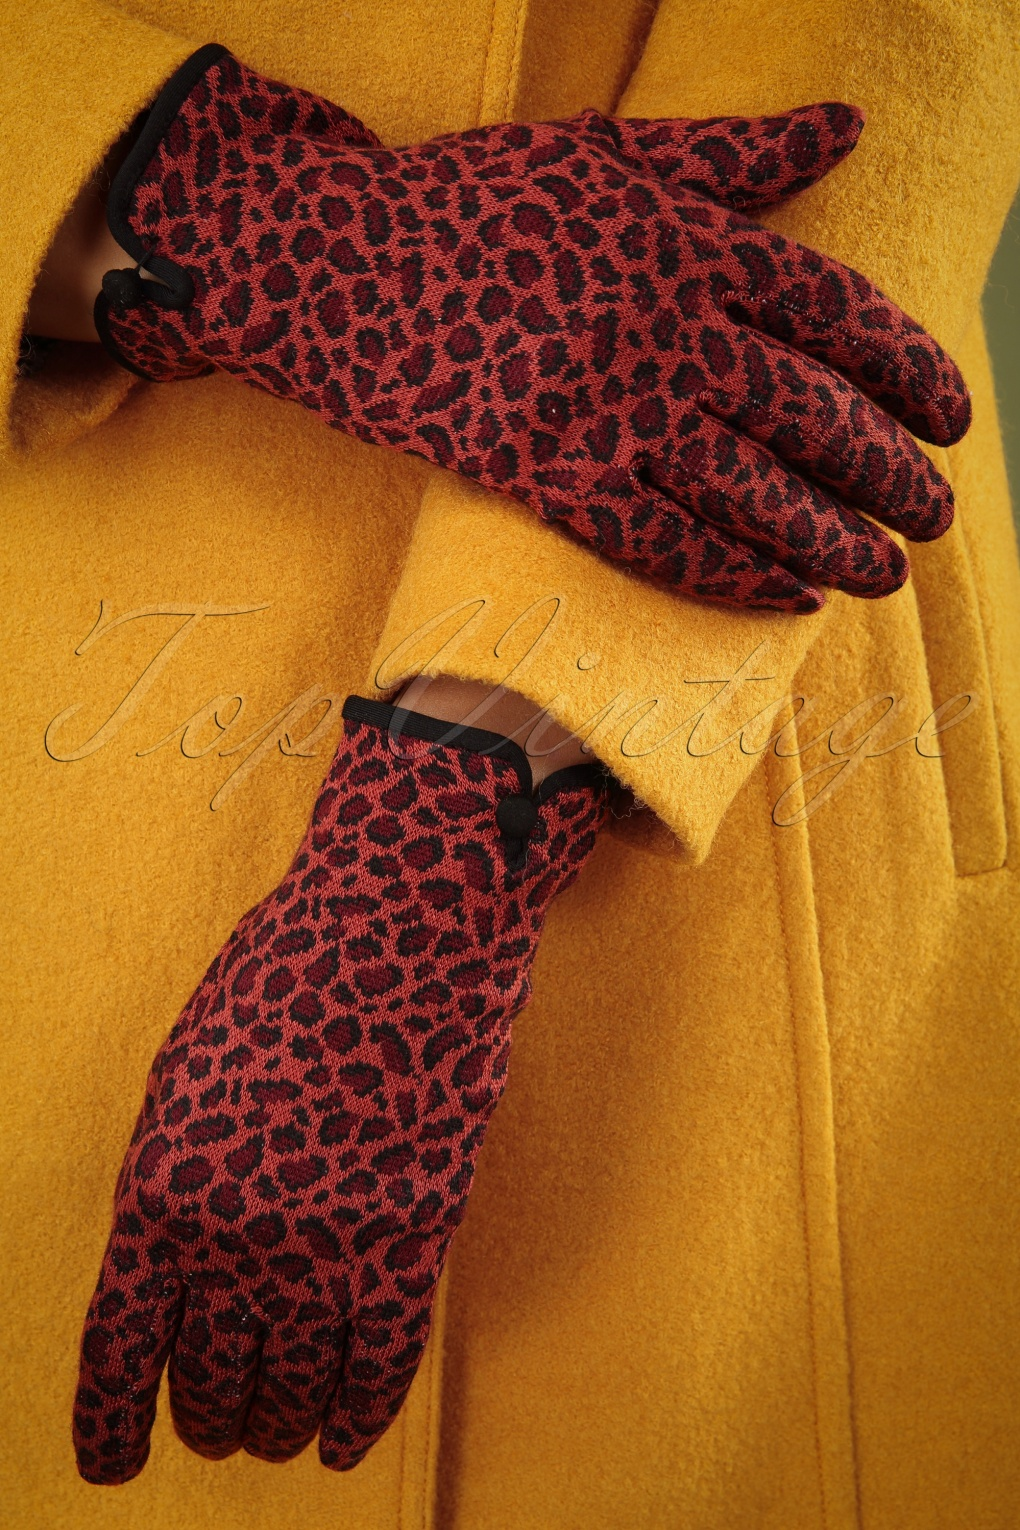 Vintage Style Gloves- Long, Wrist, Evening, Day, Leather, Lace 60s Africa Gloves in Apple Red £17.46 AT vintagedancer.com